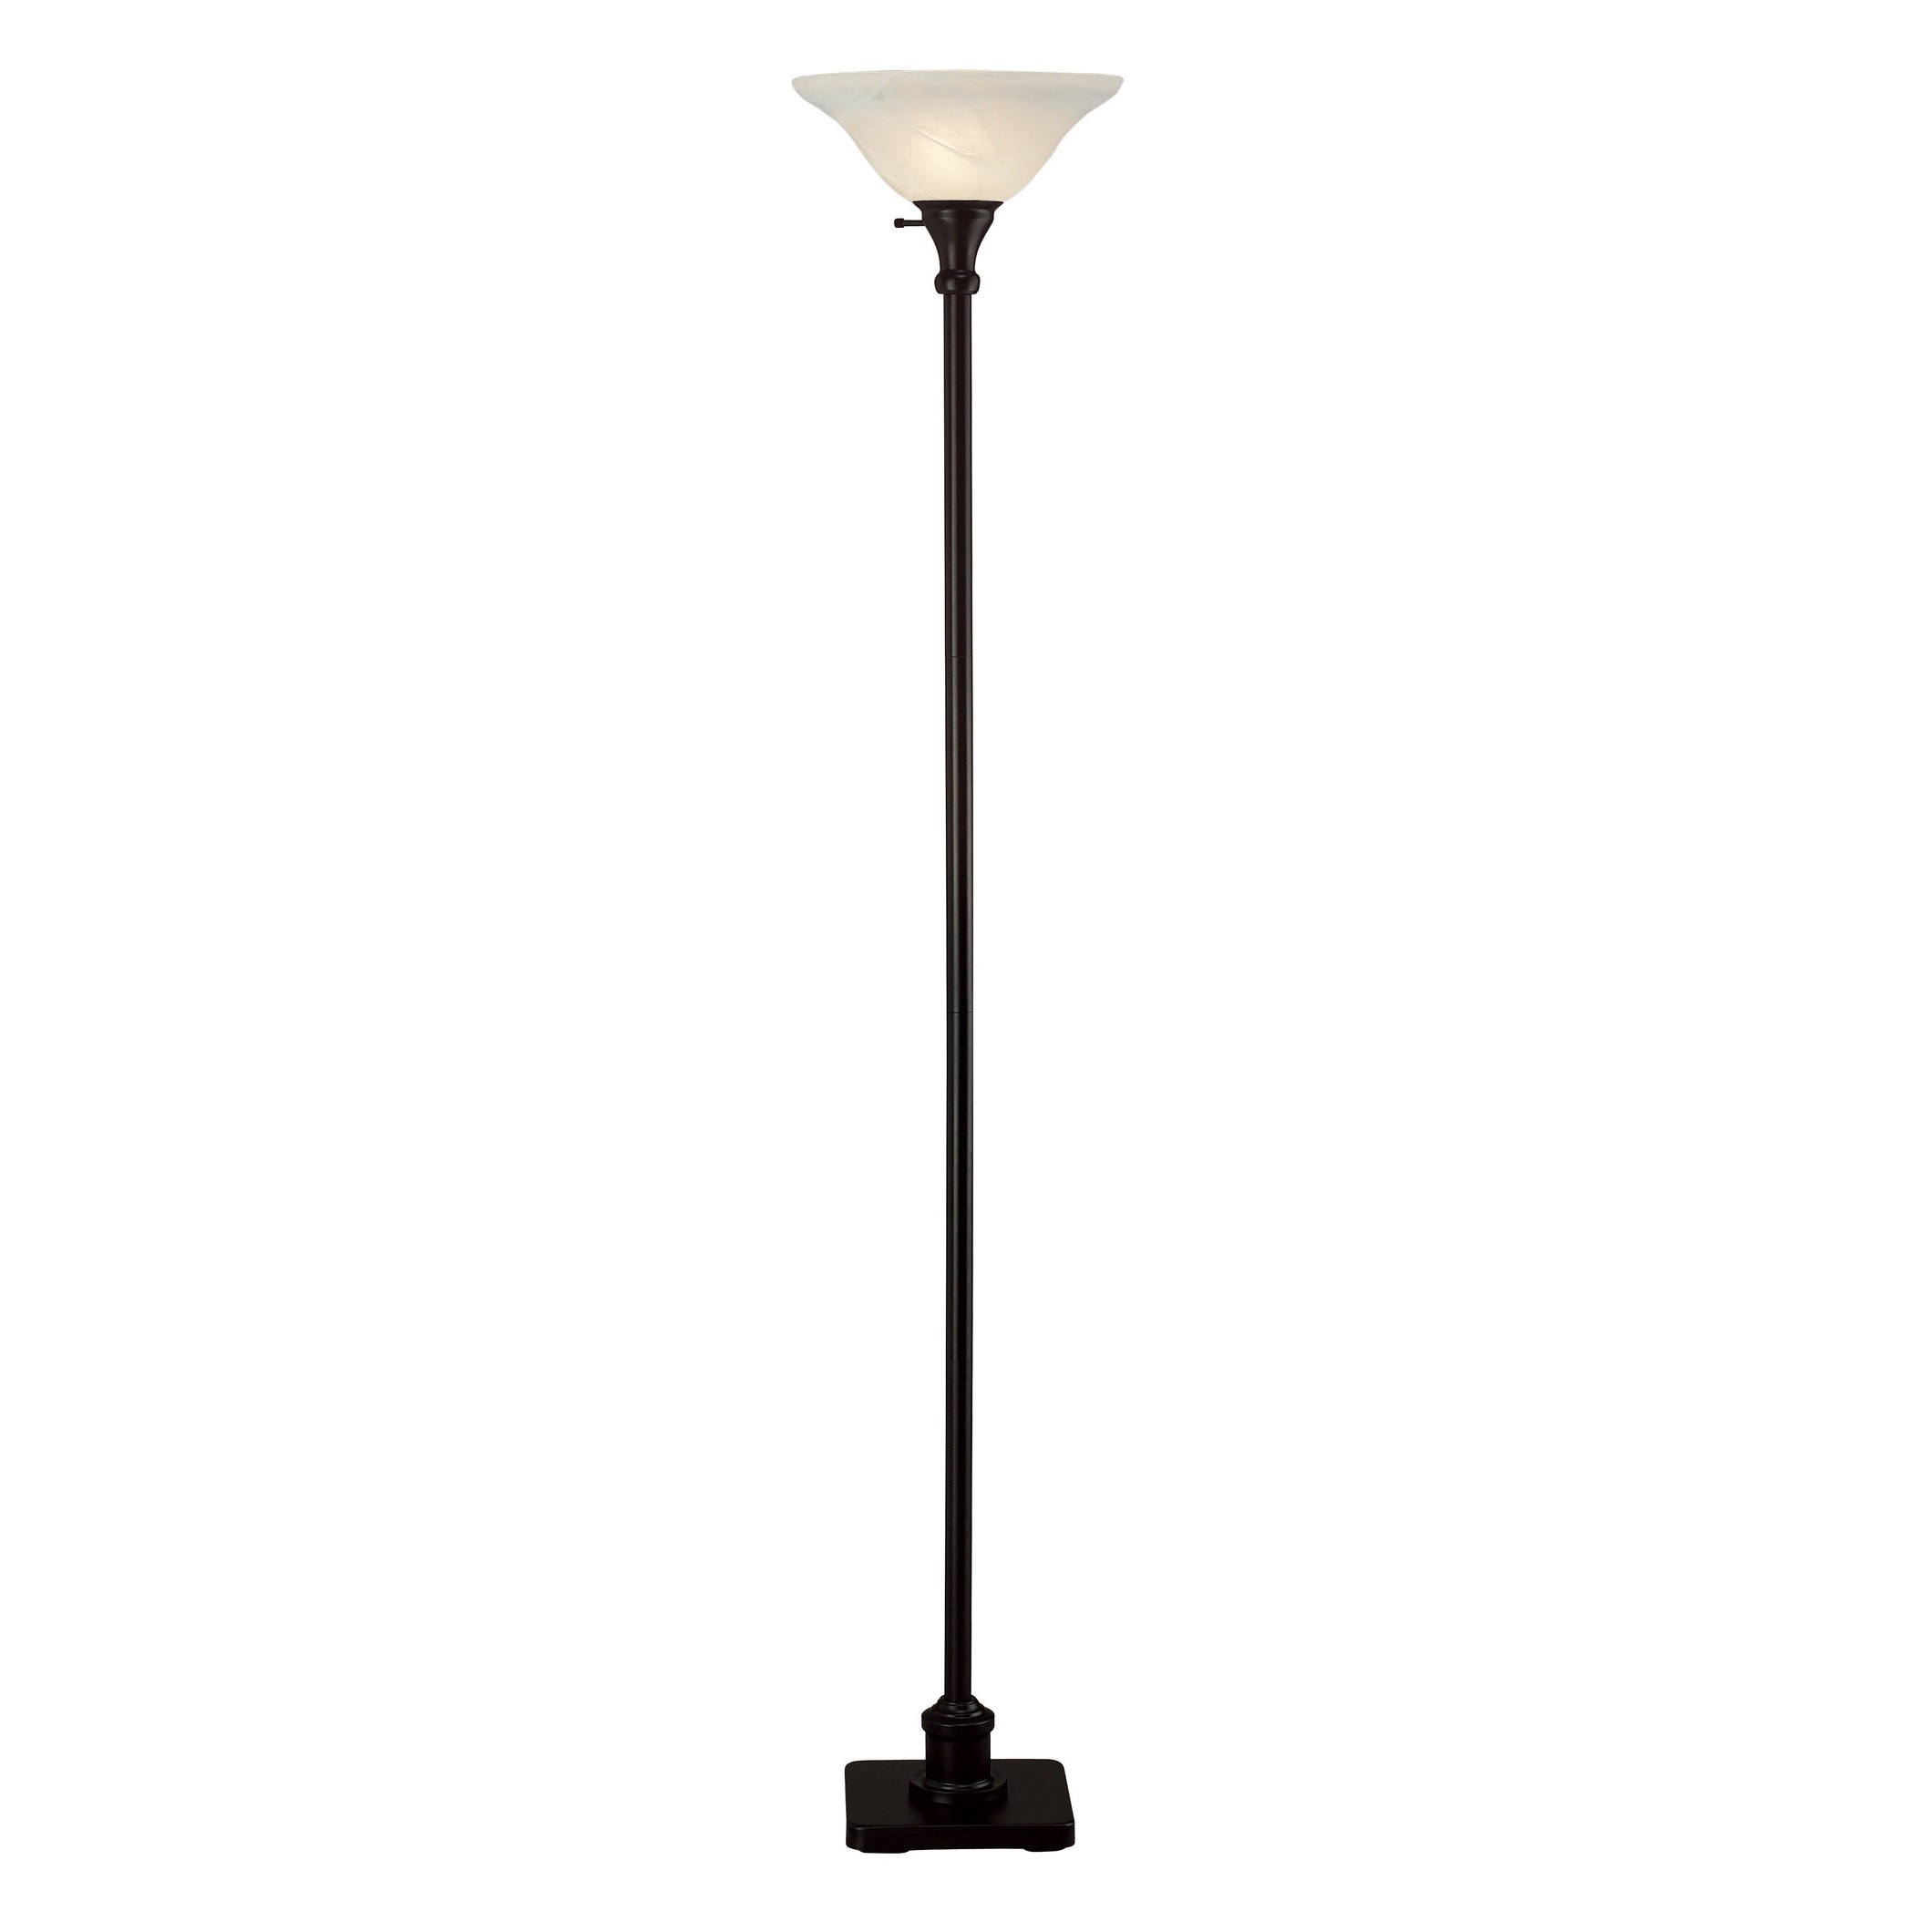 Hazelwood home torchiere floor lamp in black hmc1703 for Product design singapore